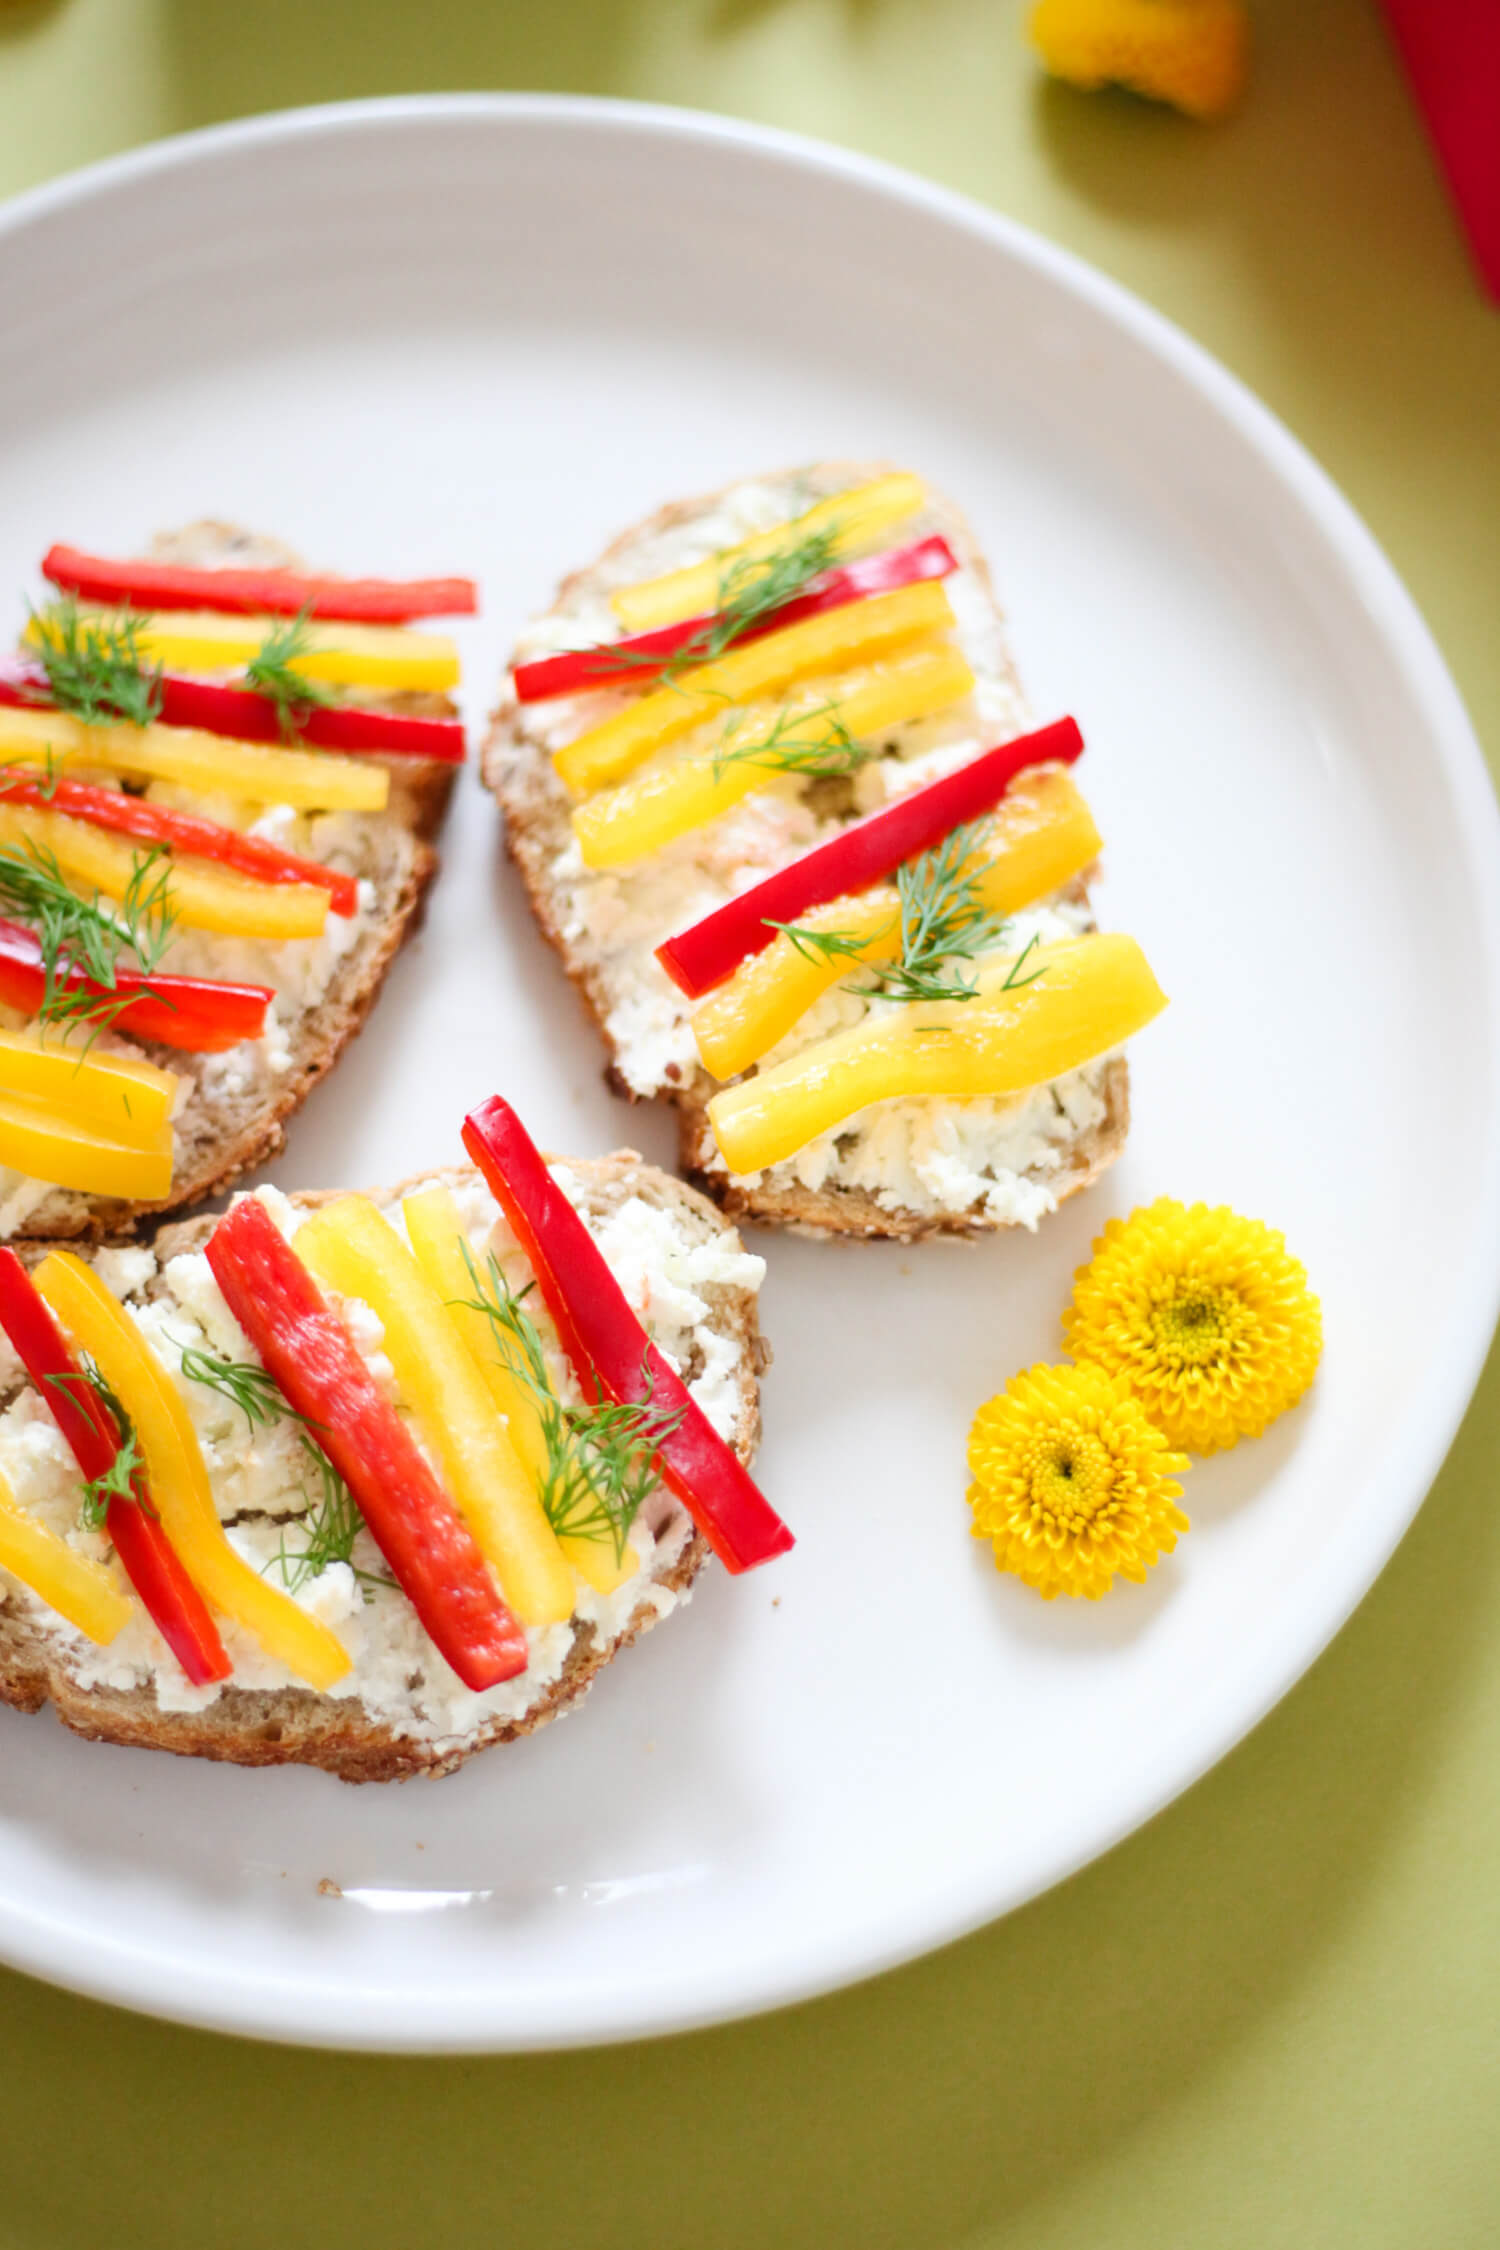 This delicious toast recipe is super easy to make!